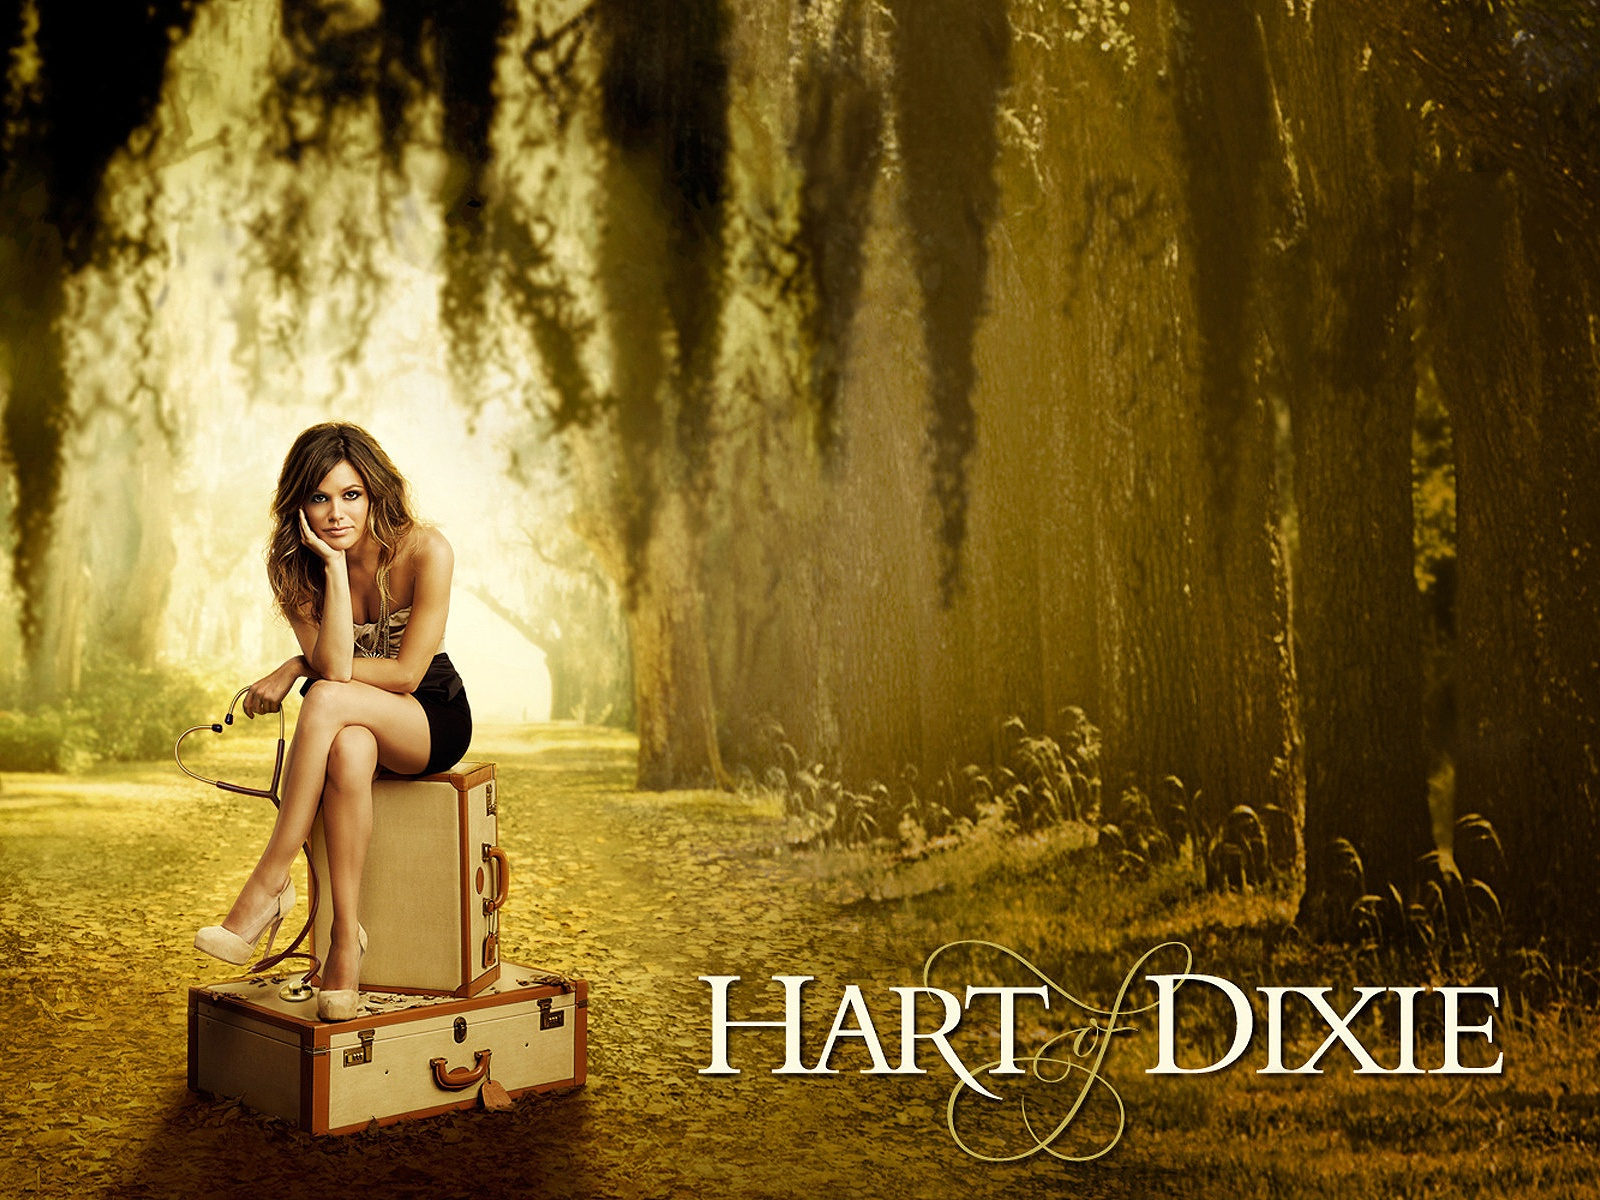 Hart-of-Dixie-Wallpapers-.jpg (1600×1200)